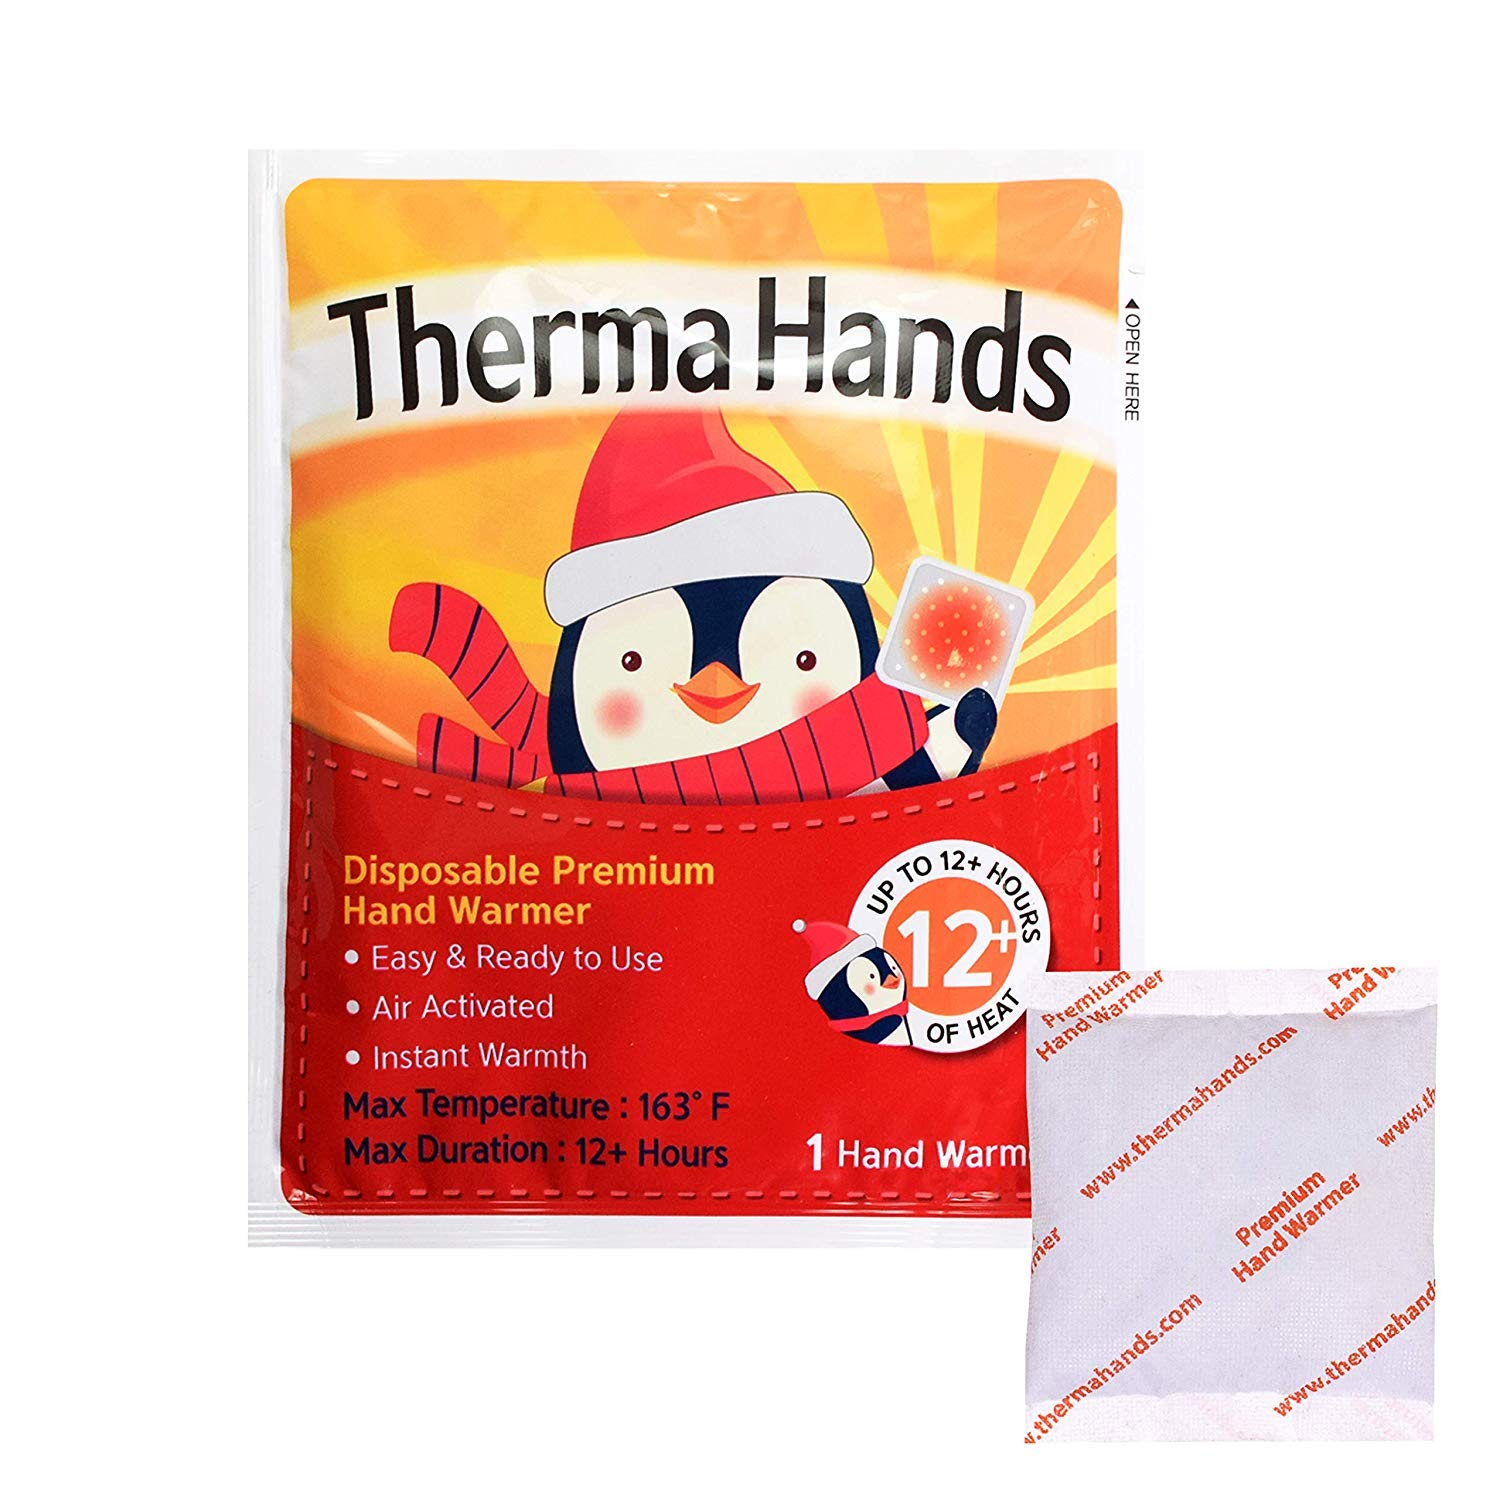 ThermaHands Hand Warmers (5 Packs) - Premium Quality (Size: 3.5 inch x 4 inch, Duration: 12+ Hours, Max Temp: 163 F) Air-Activated, Convenient, Safe, Natural, Odorless, Long Lasting Warmers by ThermaHands